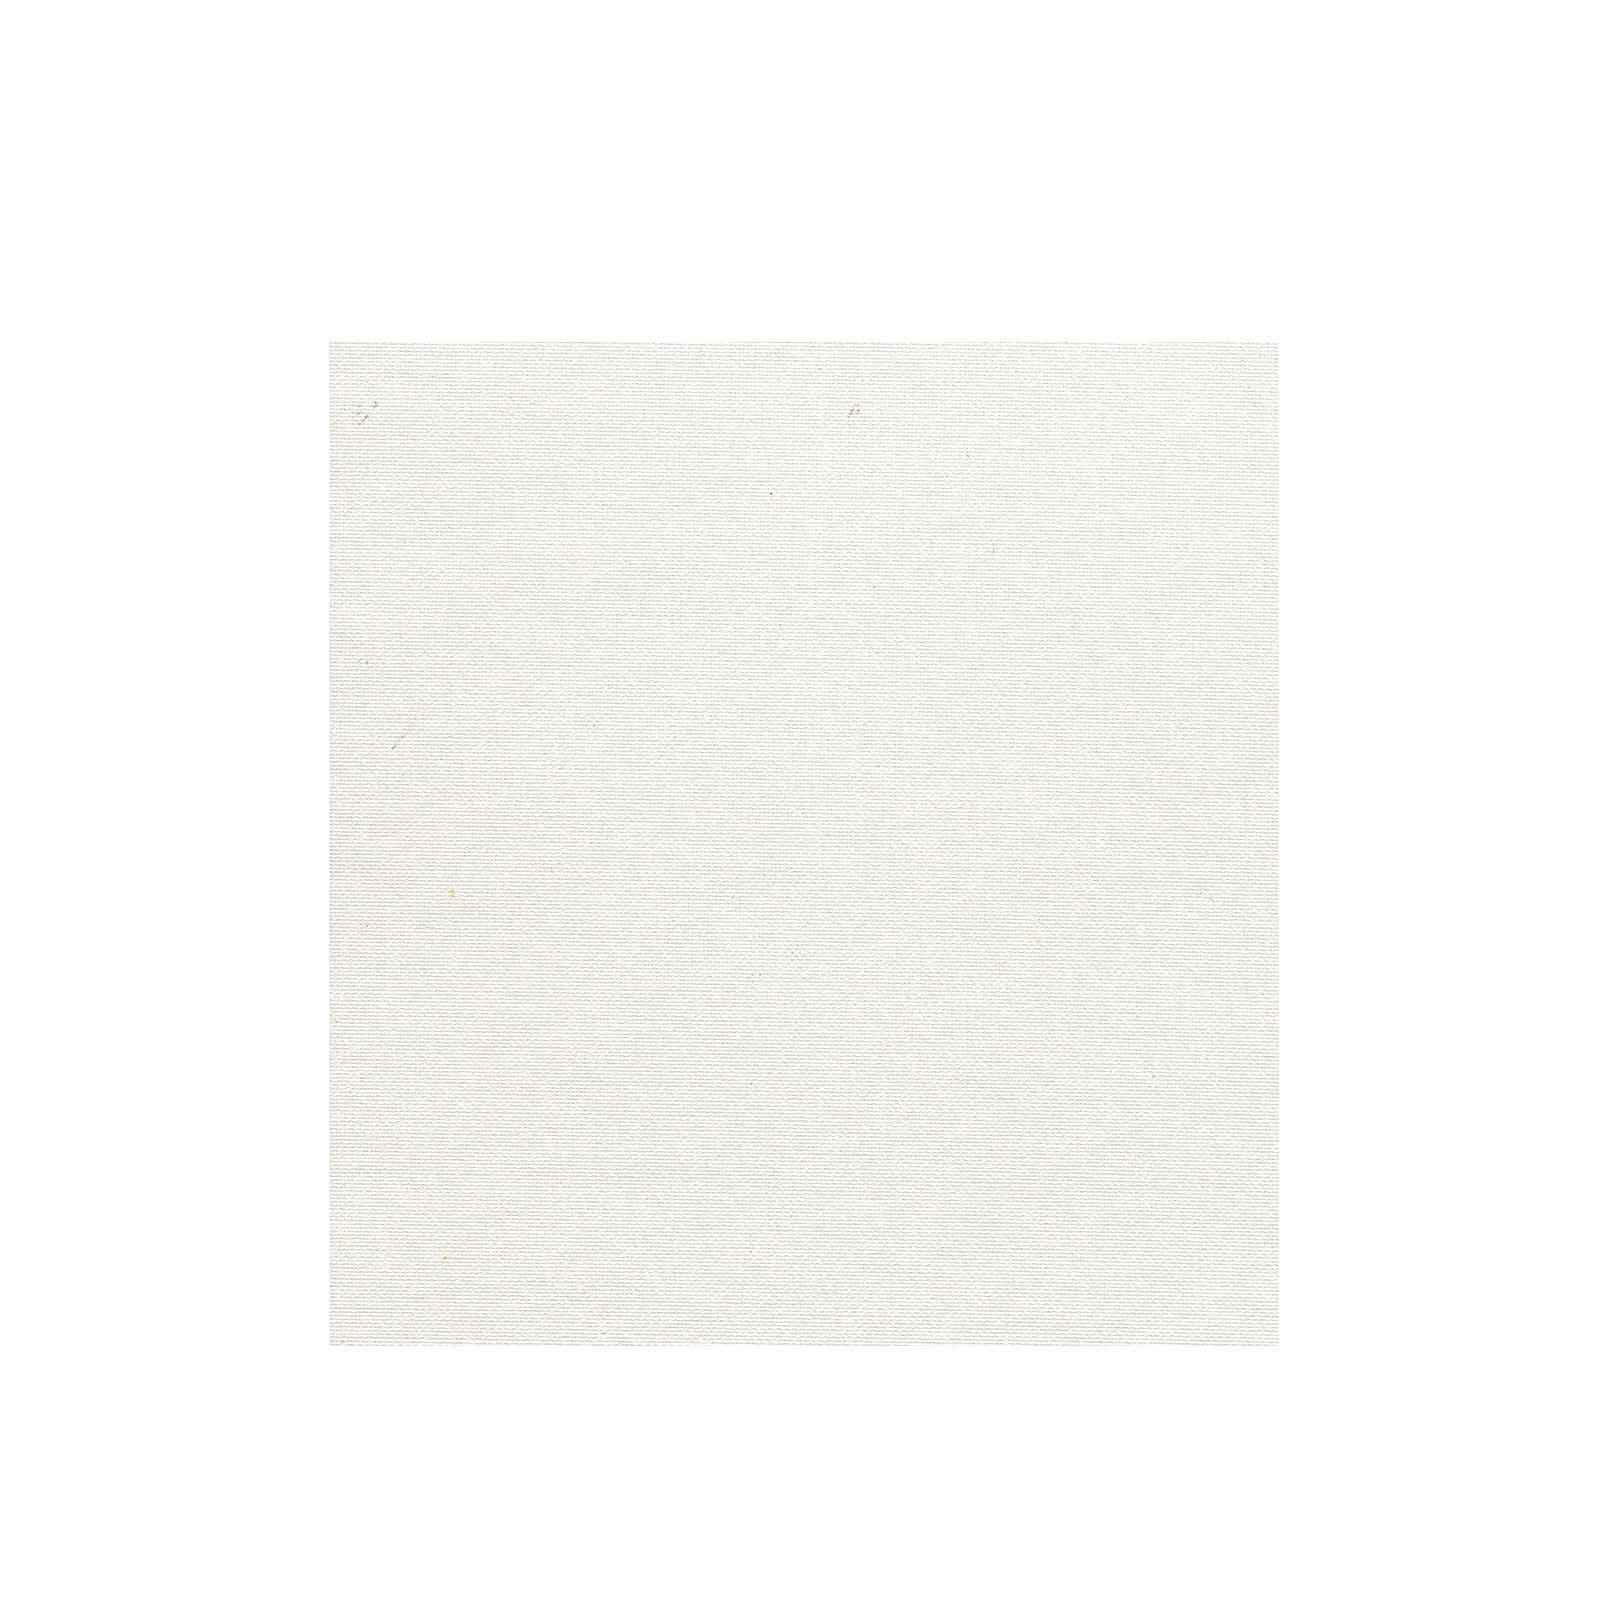 Fredrix White Canvas Boards (Pack of 6) (3044-6)